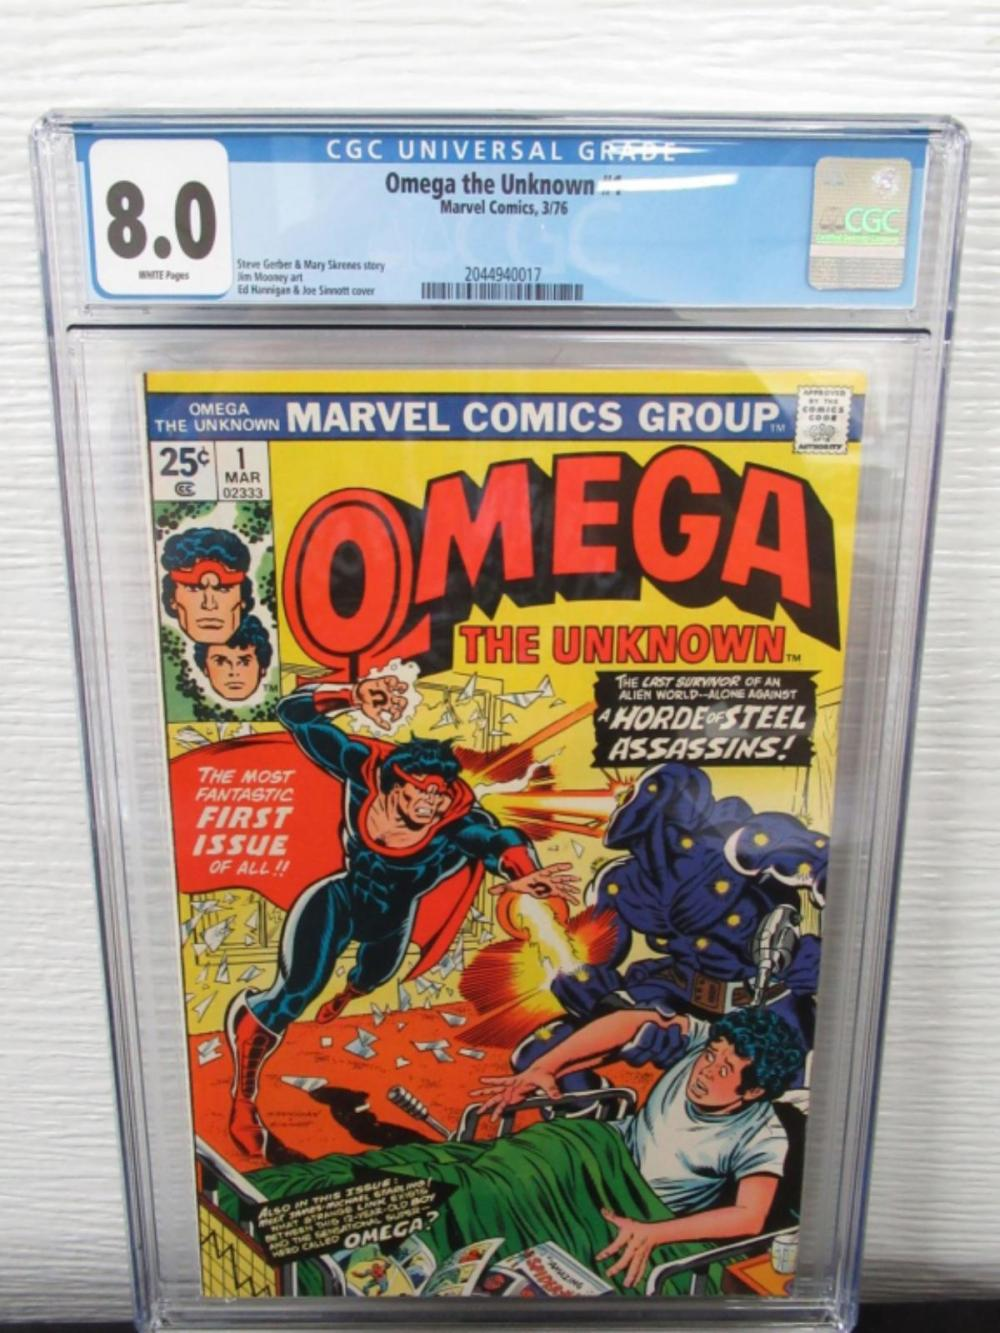 Omega the Unknown #1 CGC 8.0